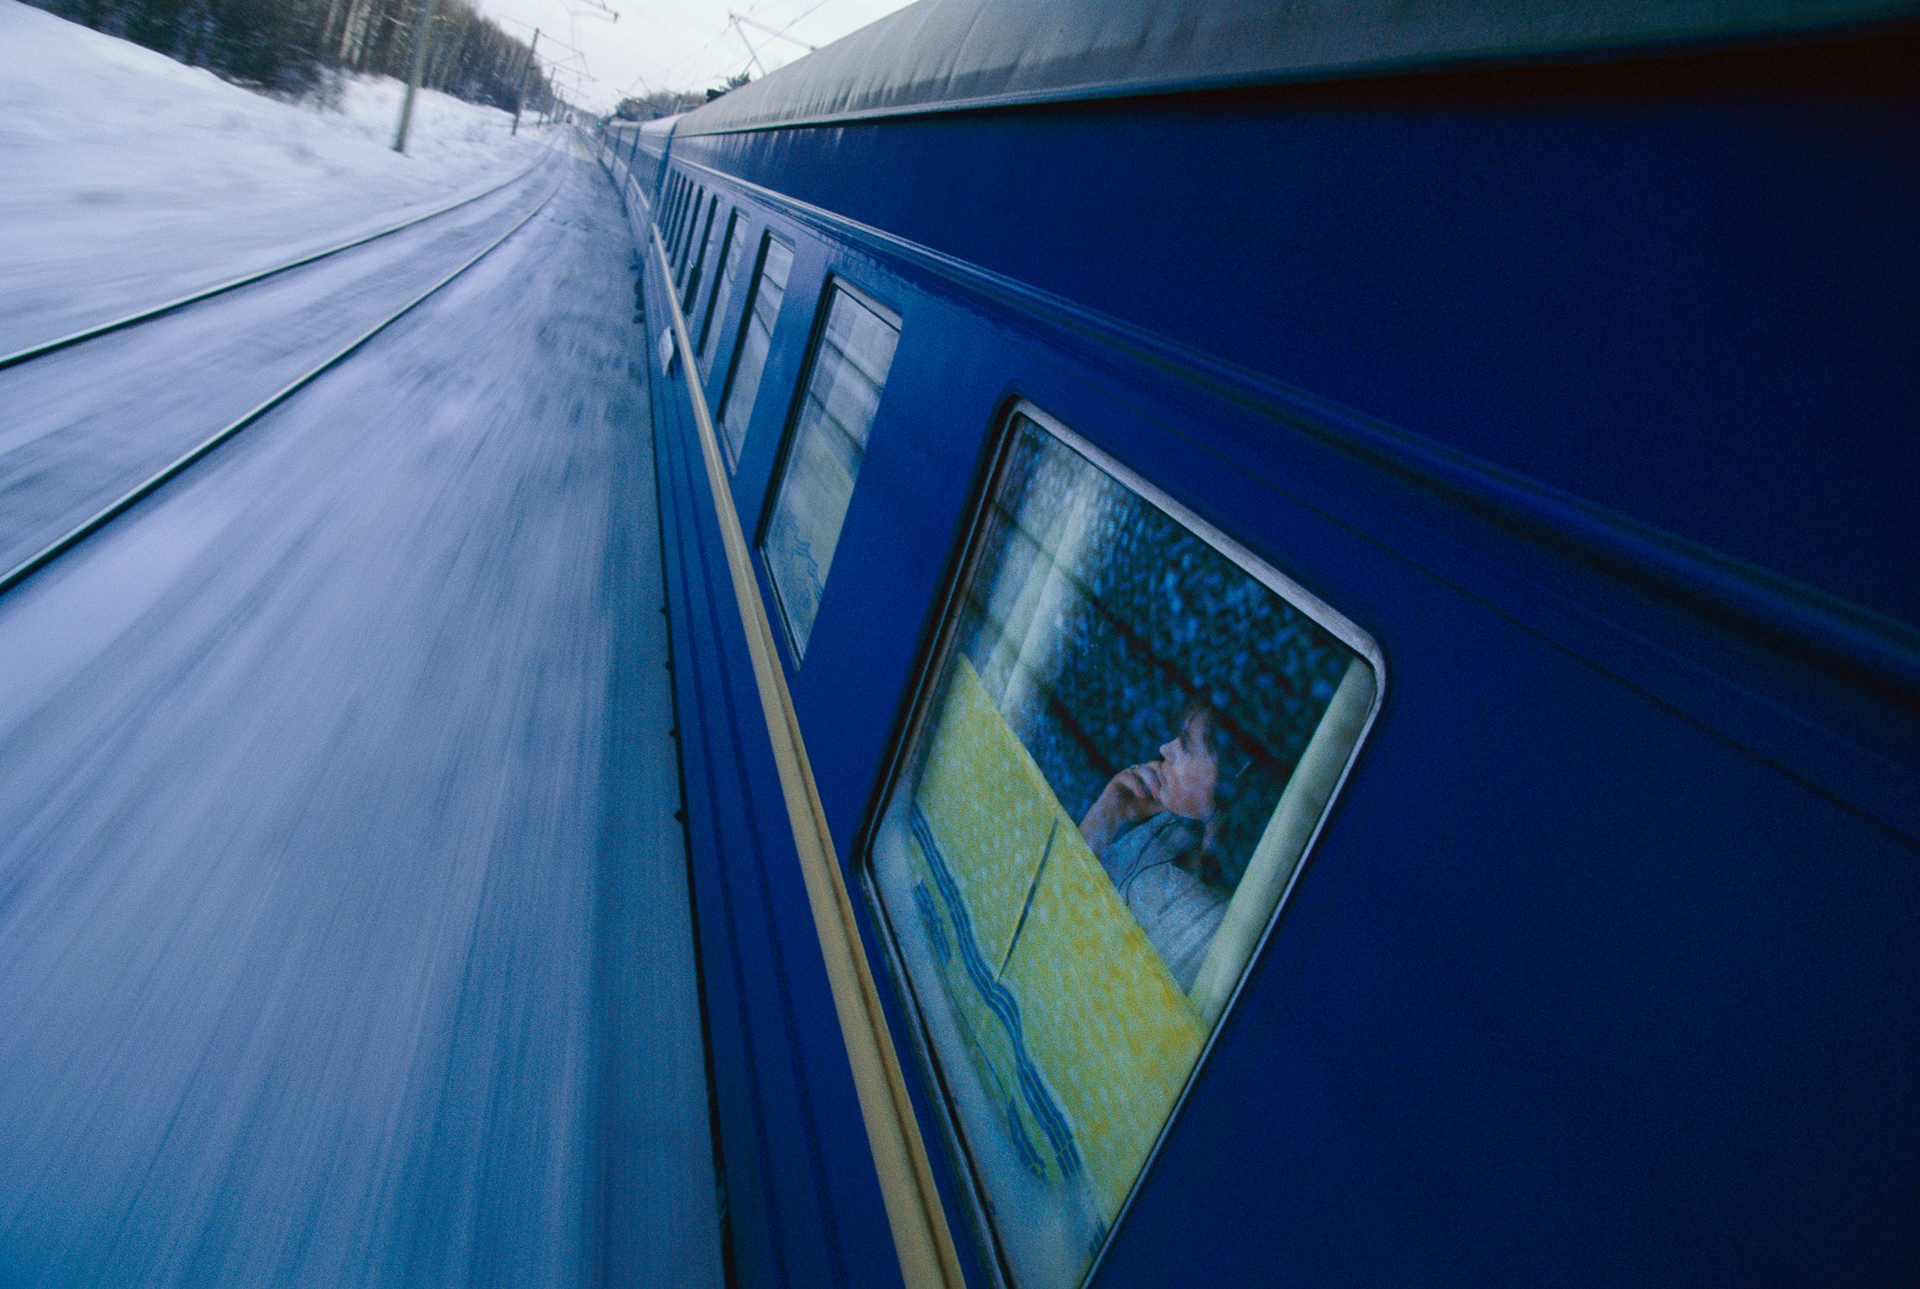 The world's longest railroad, the Trans-Siberian is a century-old monument to the tsars' imperial will, the Soviet Union's might, and Russia's resilience. From Moscow, it heads east through the Ural Mountains and across Asia to Vladivostok, on the Sea of Japan.  Siberia, Russia